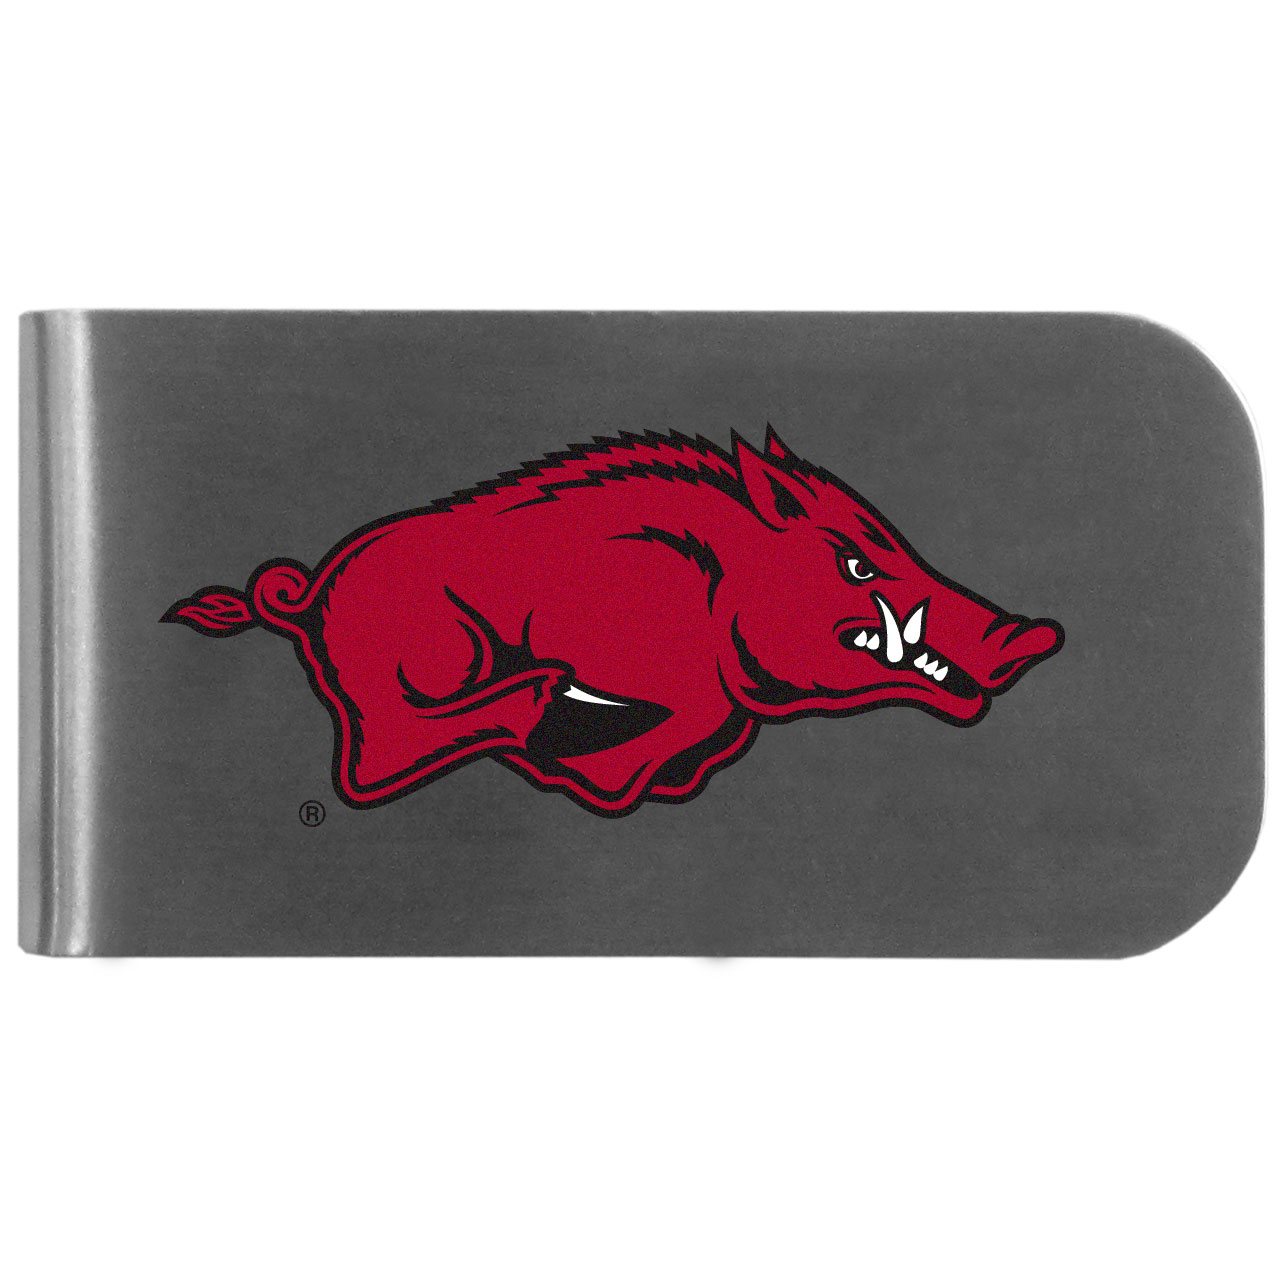 Arkansas Razorbacks Logo Bottle Opener Money Clip - This unique money clip features a classic, brushed-metal finish with a handy bottle opener feature on the back. The clip has the Arkansas Razorbacks logo expertly printed on the front of the clip.